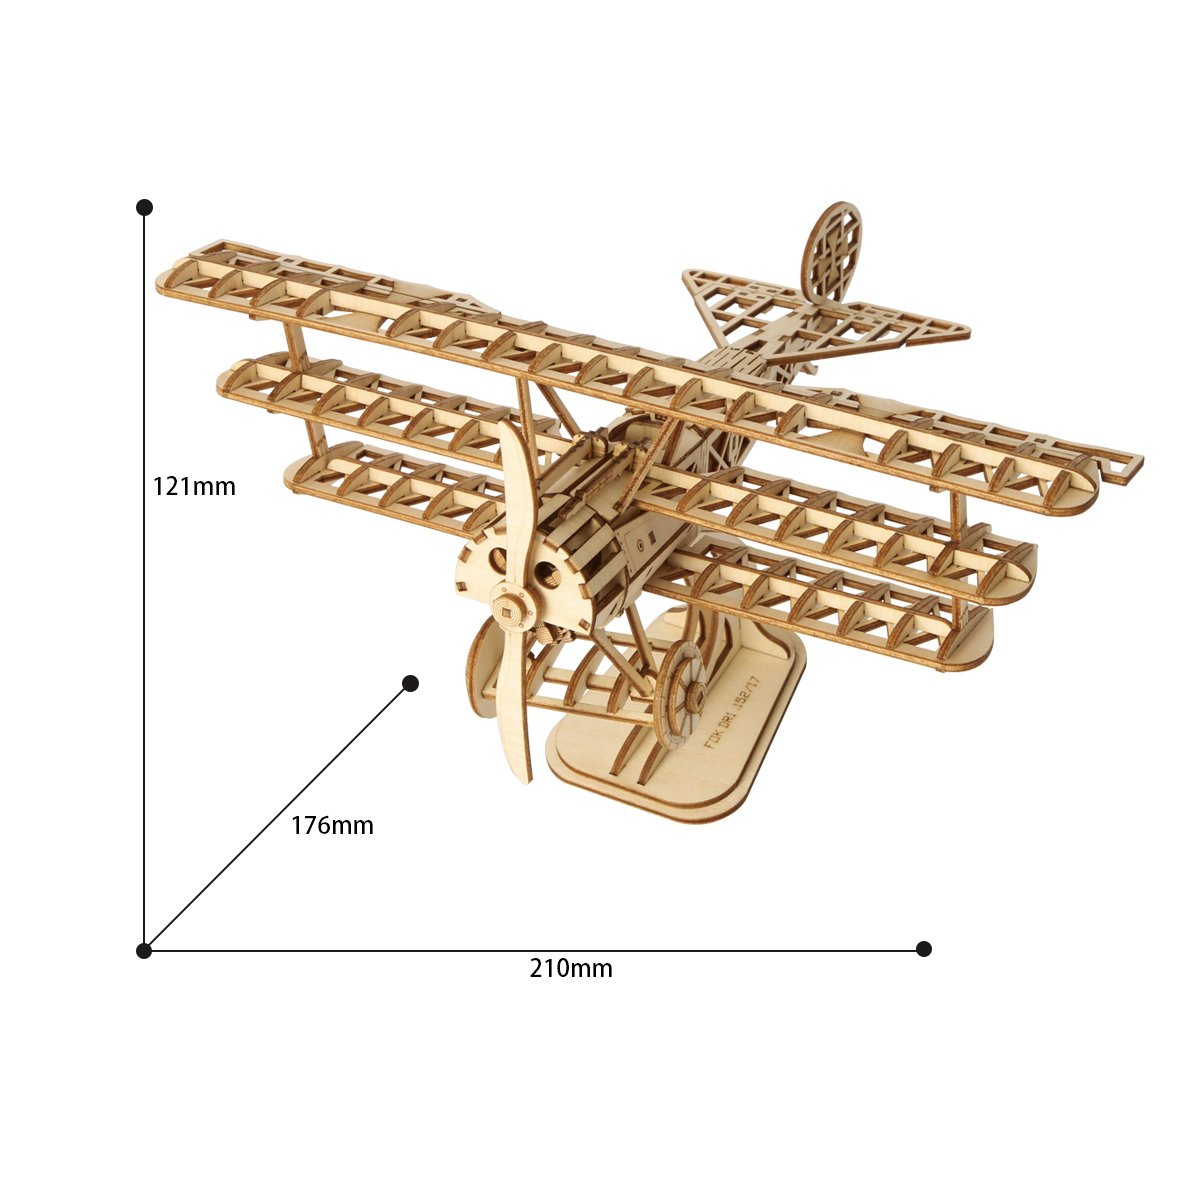 AIRPLANE Teens and Adults Rolife Woodcraft Construction Kit 3D Wooden Puzzle Kits DIY Toy Gift For Kids